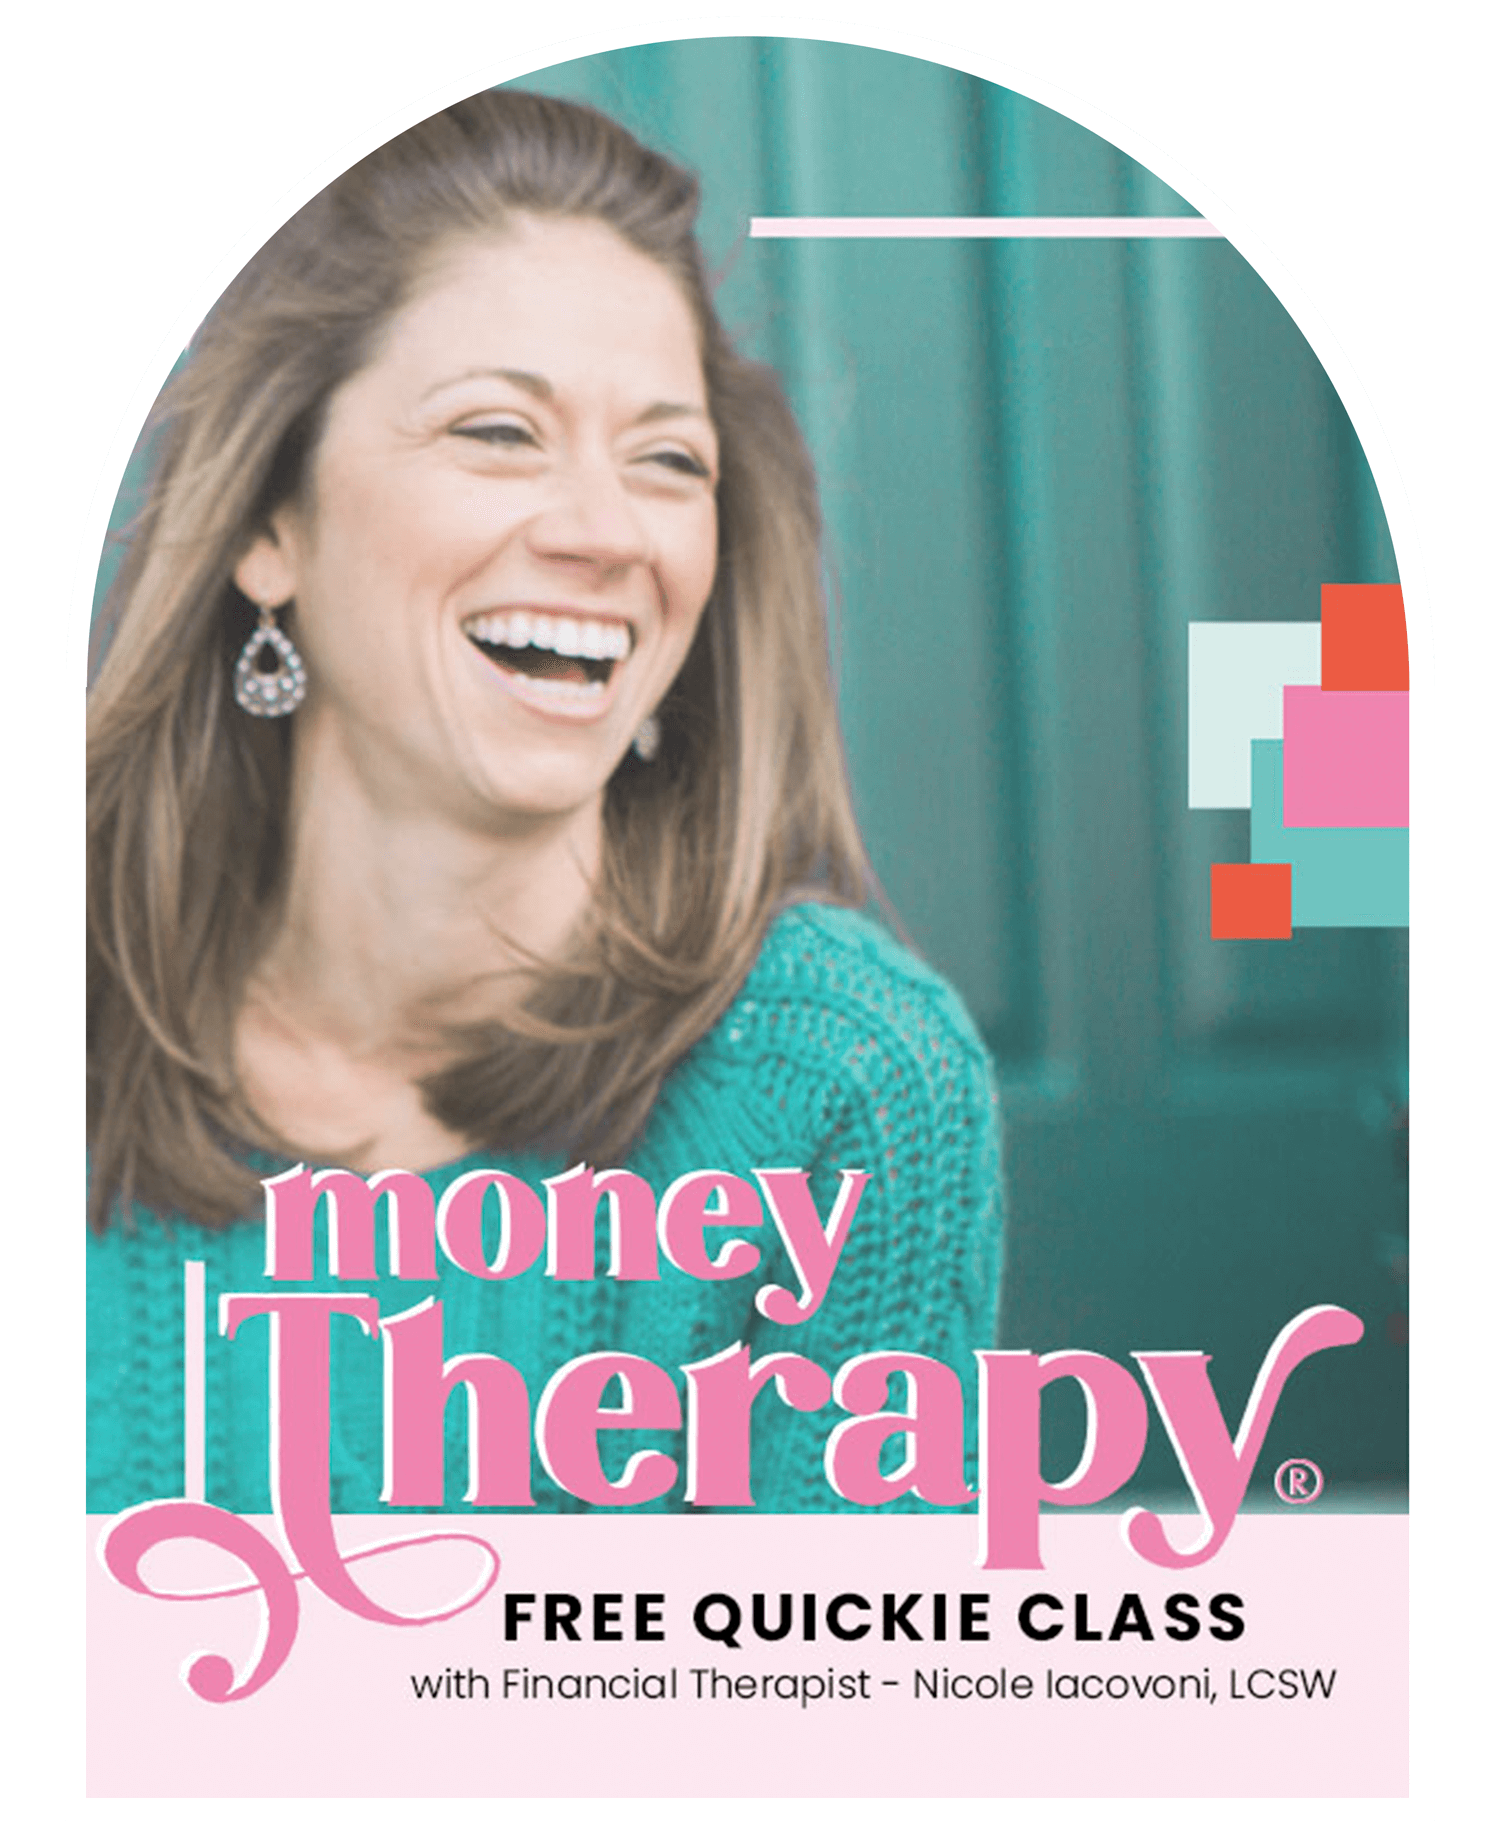 Money Therapy Quickie Class - a free 3-day class for creatives